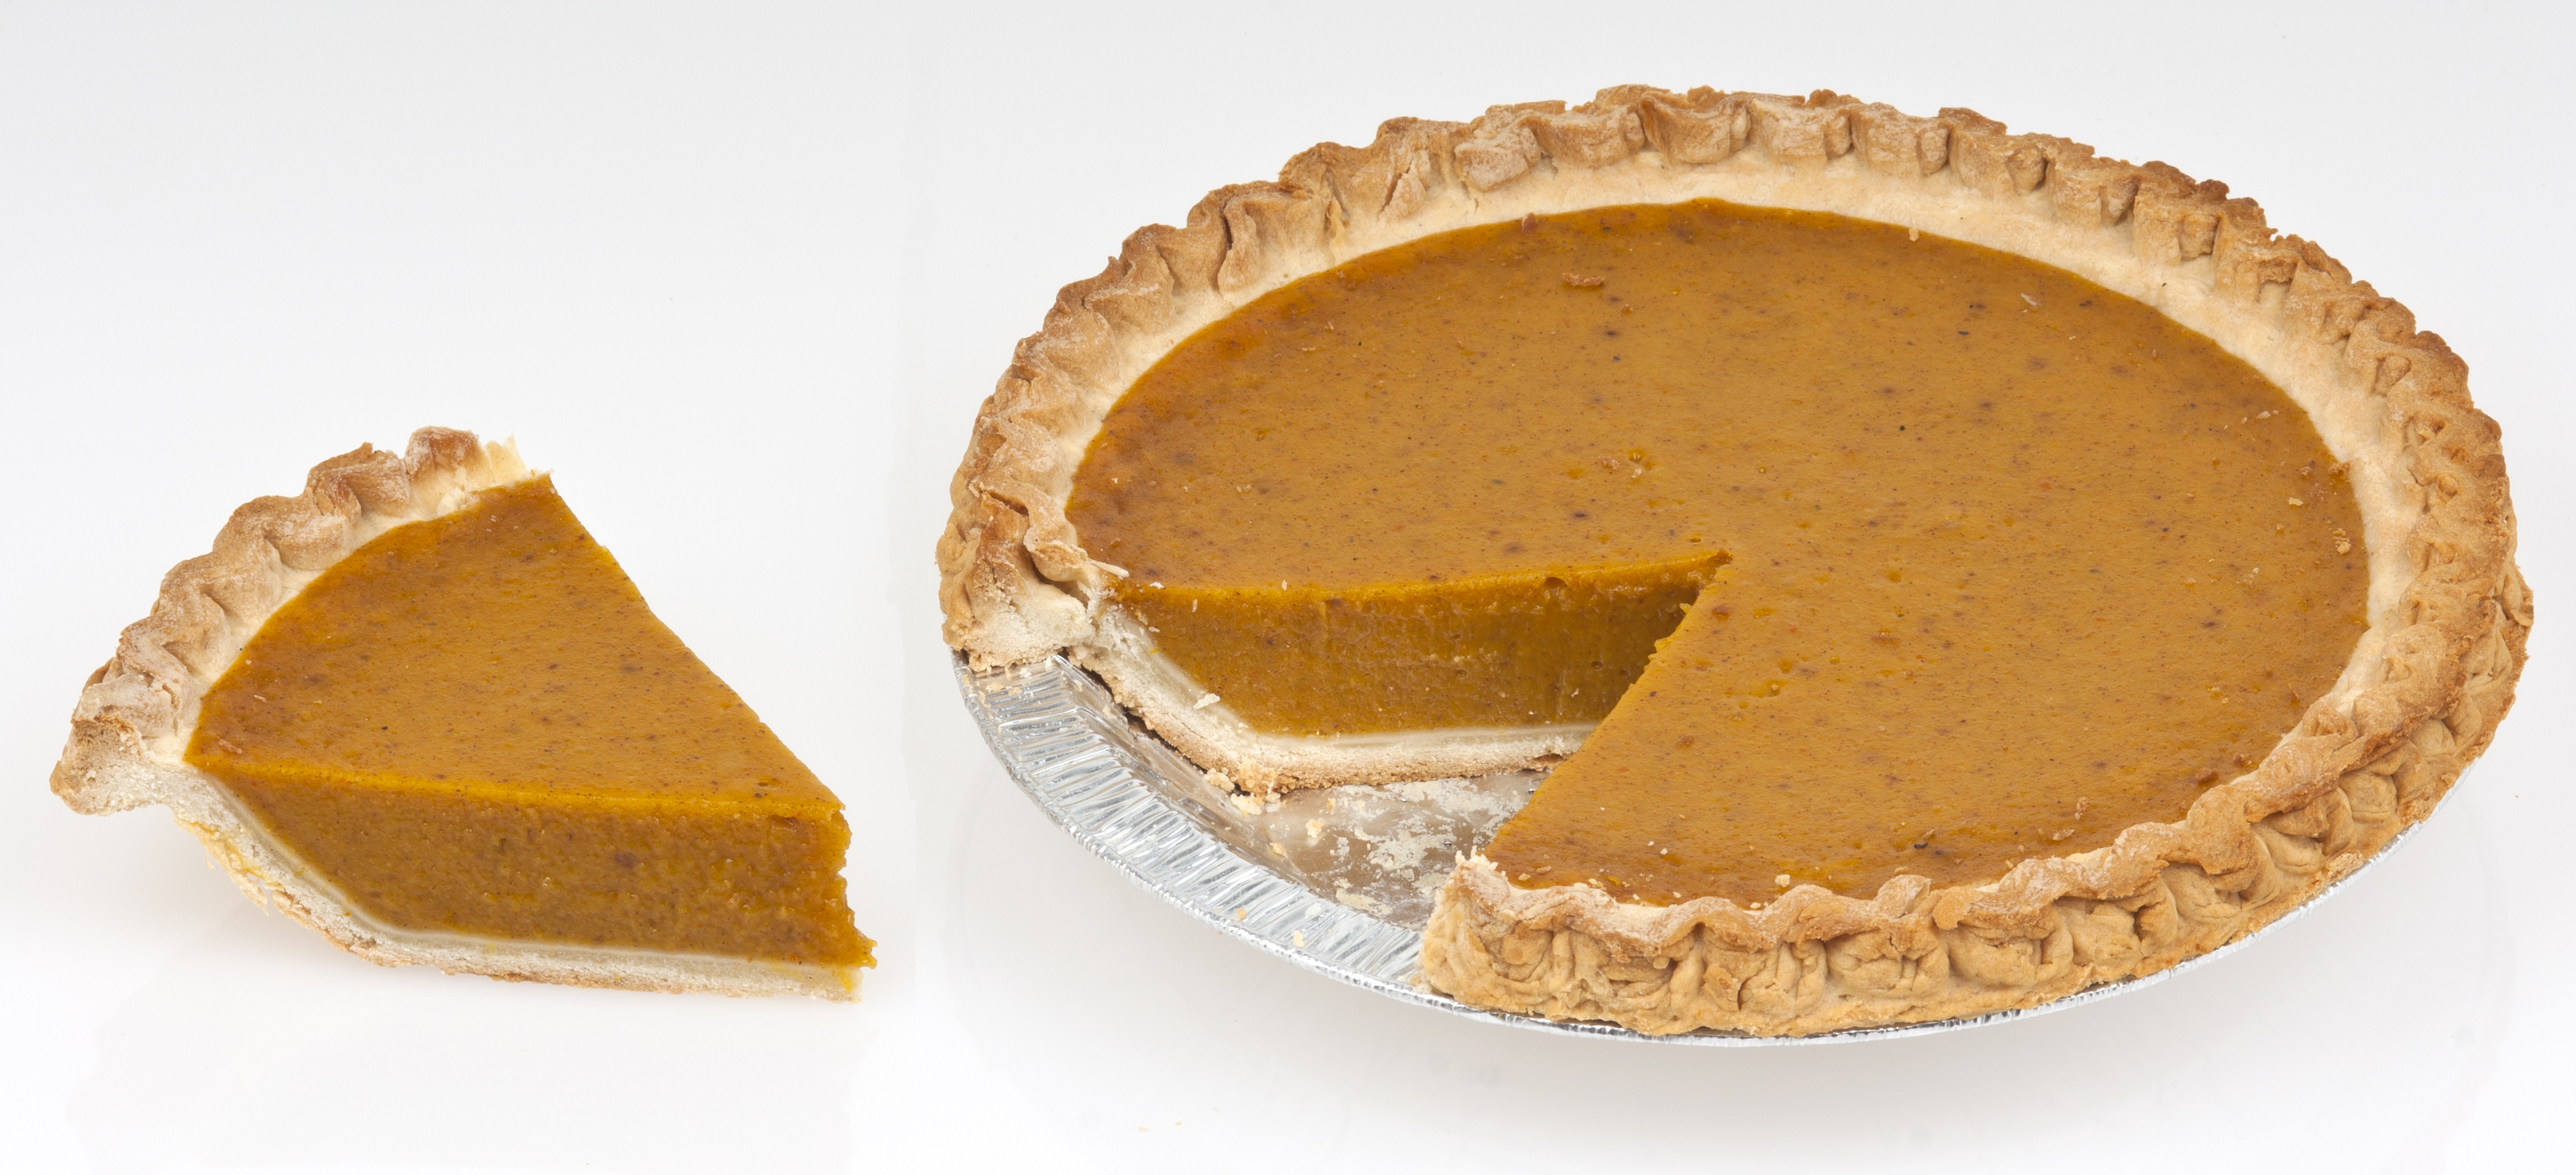 File:Pumpkin-Pie-Whole-Slice.jpg - Wikimedia Commons